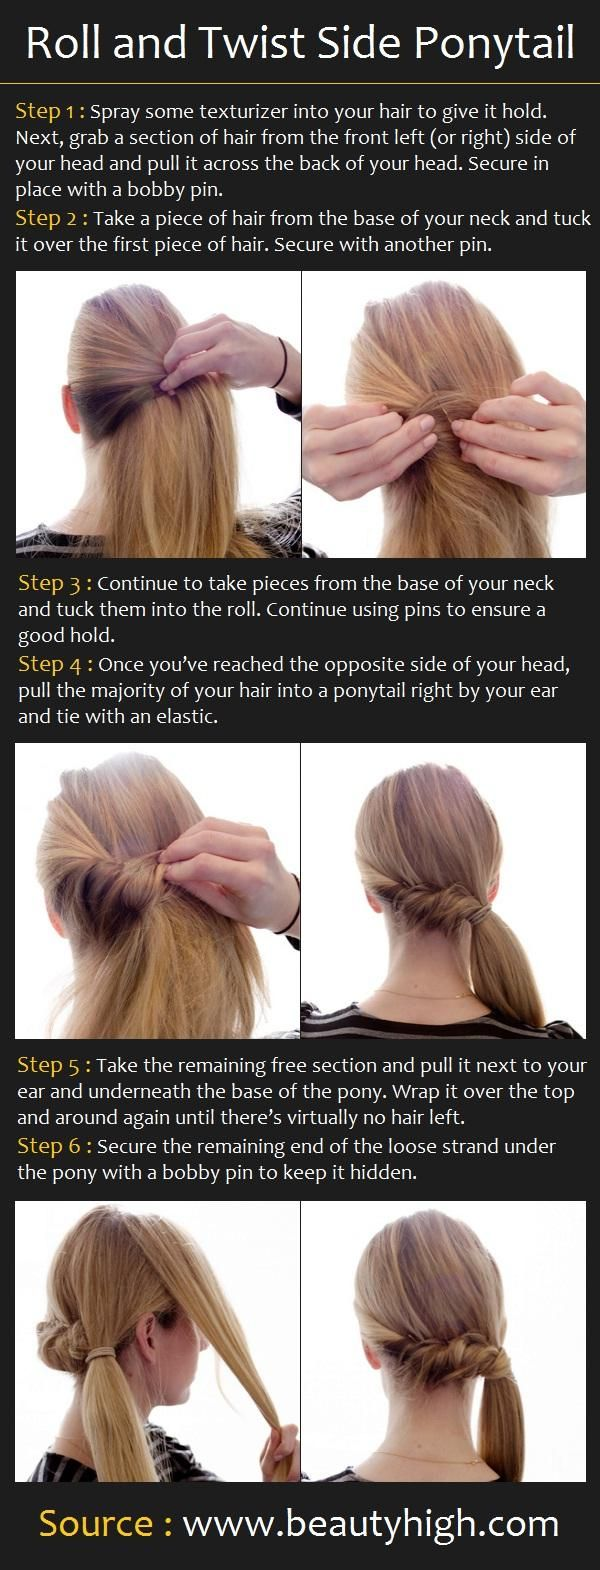 Roll and Twist Side Ponytail (I've always had a hard time w/ these, but never tried it like this, so we'll see!) =)